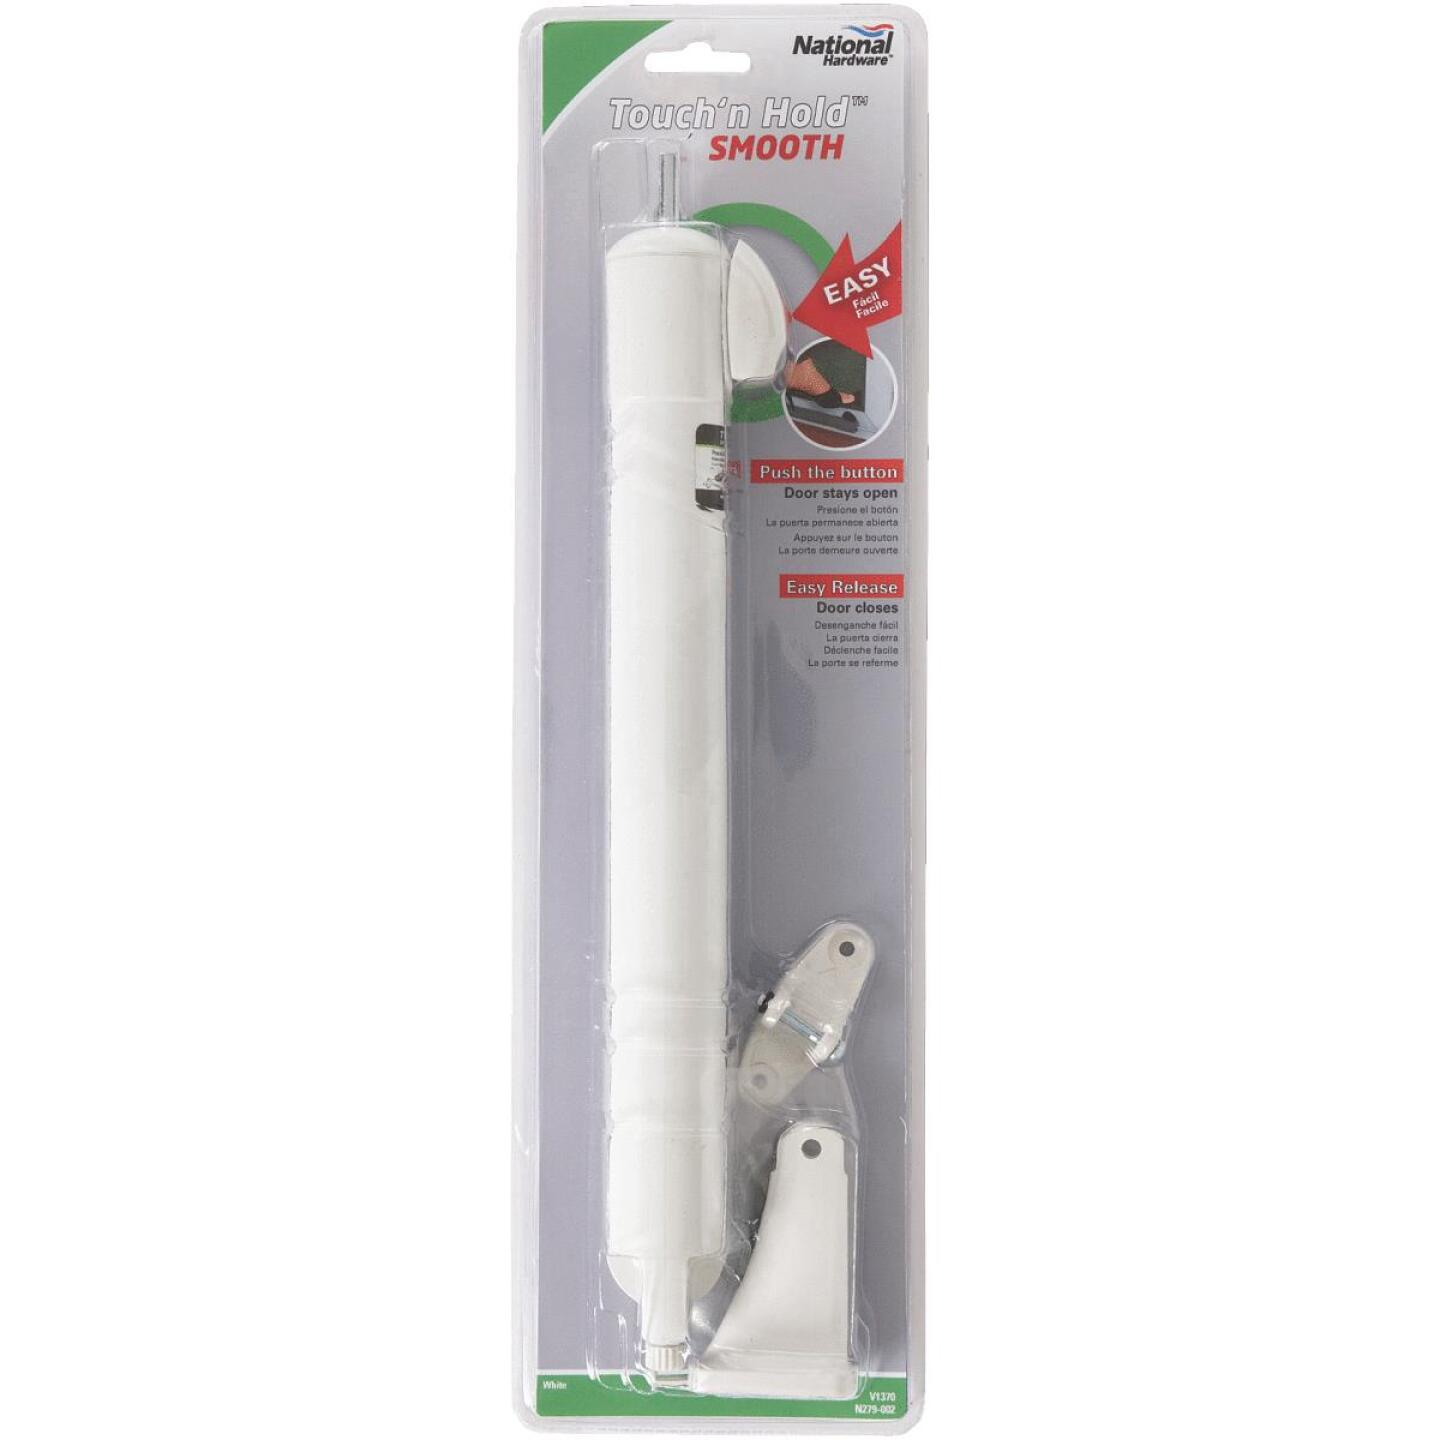 National White Touch'N Hold Smooth Screen Door Closer Image 2